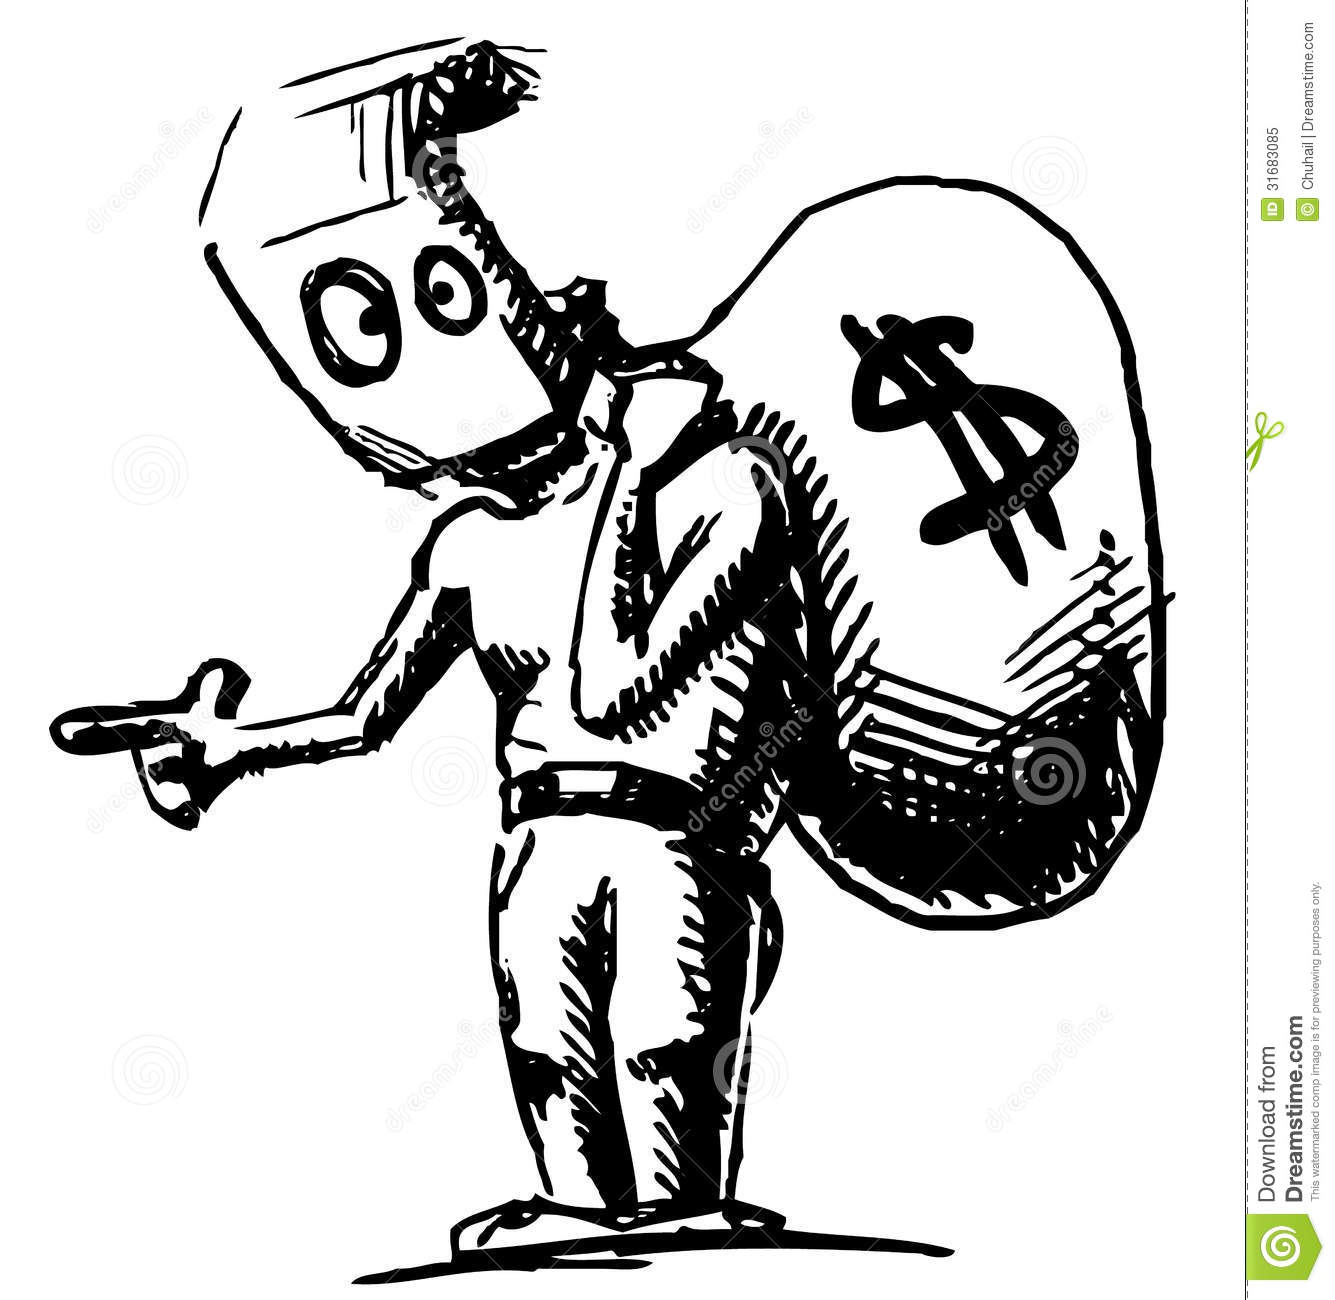 Pile Of Coins In The Palms Vector 9257122 as well Thinking Skills in addition Money Bag Clip Art furthermore Collections List likewise Royalty Free Stock Photo Robber Mask Money Bag Hand Drawing Sketch Vector Character Isolated White Background Image31683085. on drawing money bag